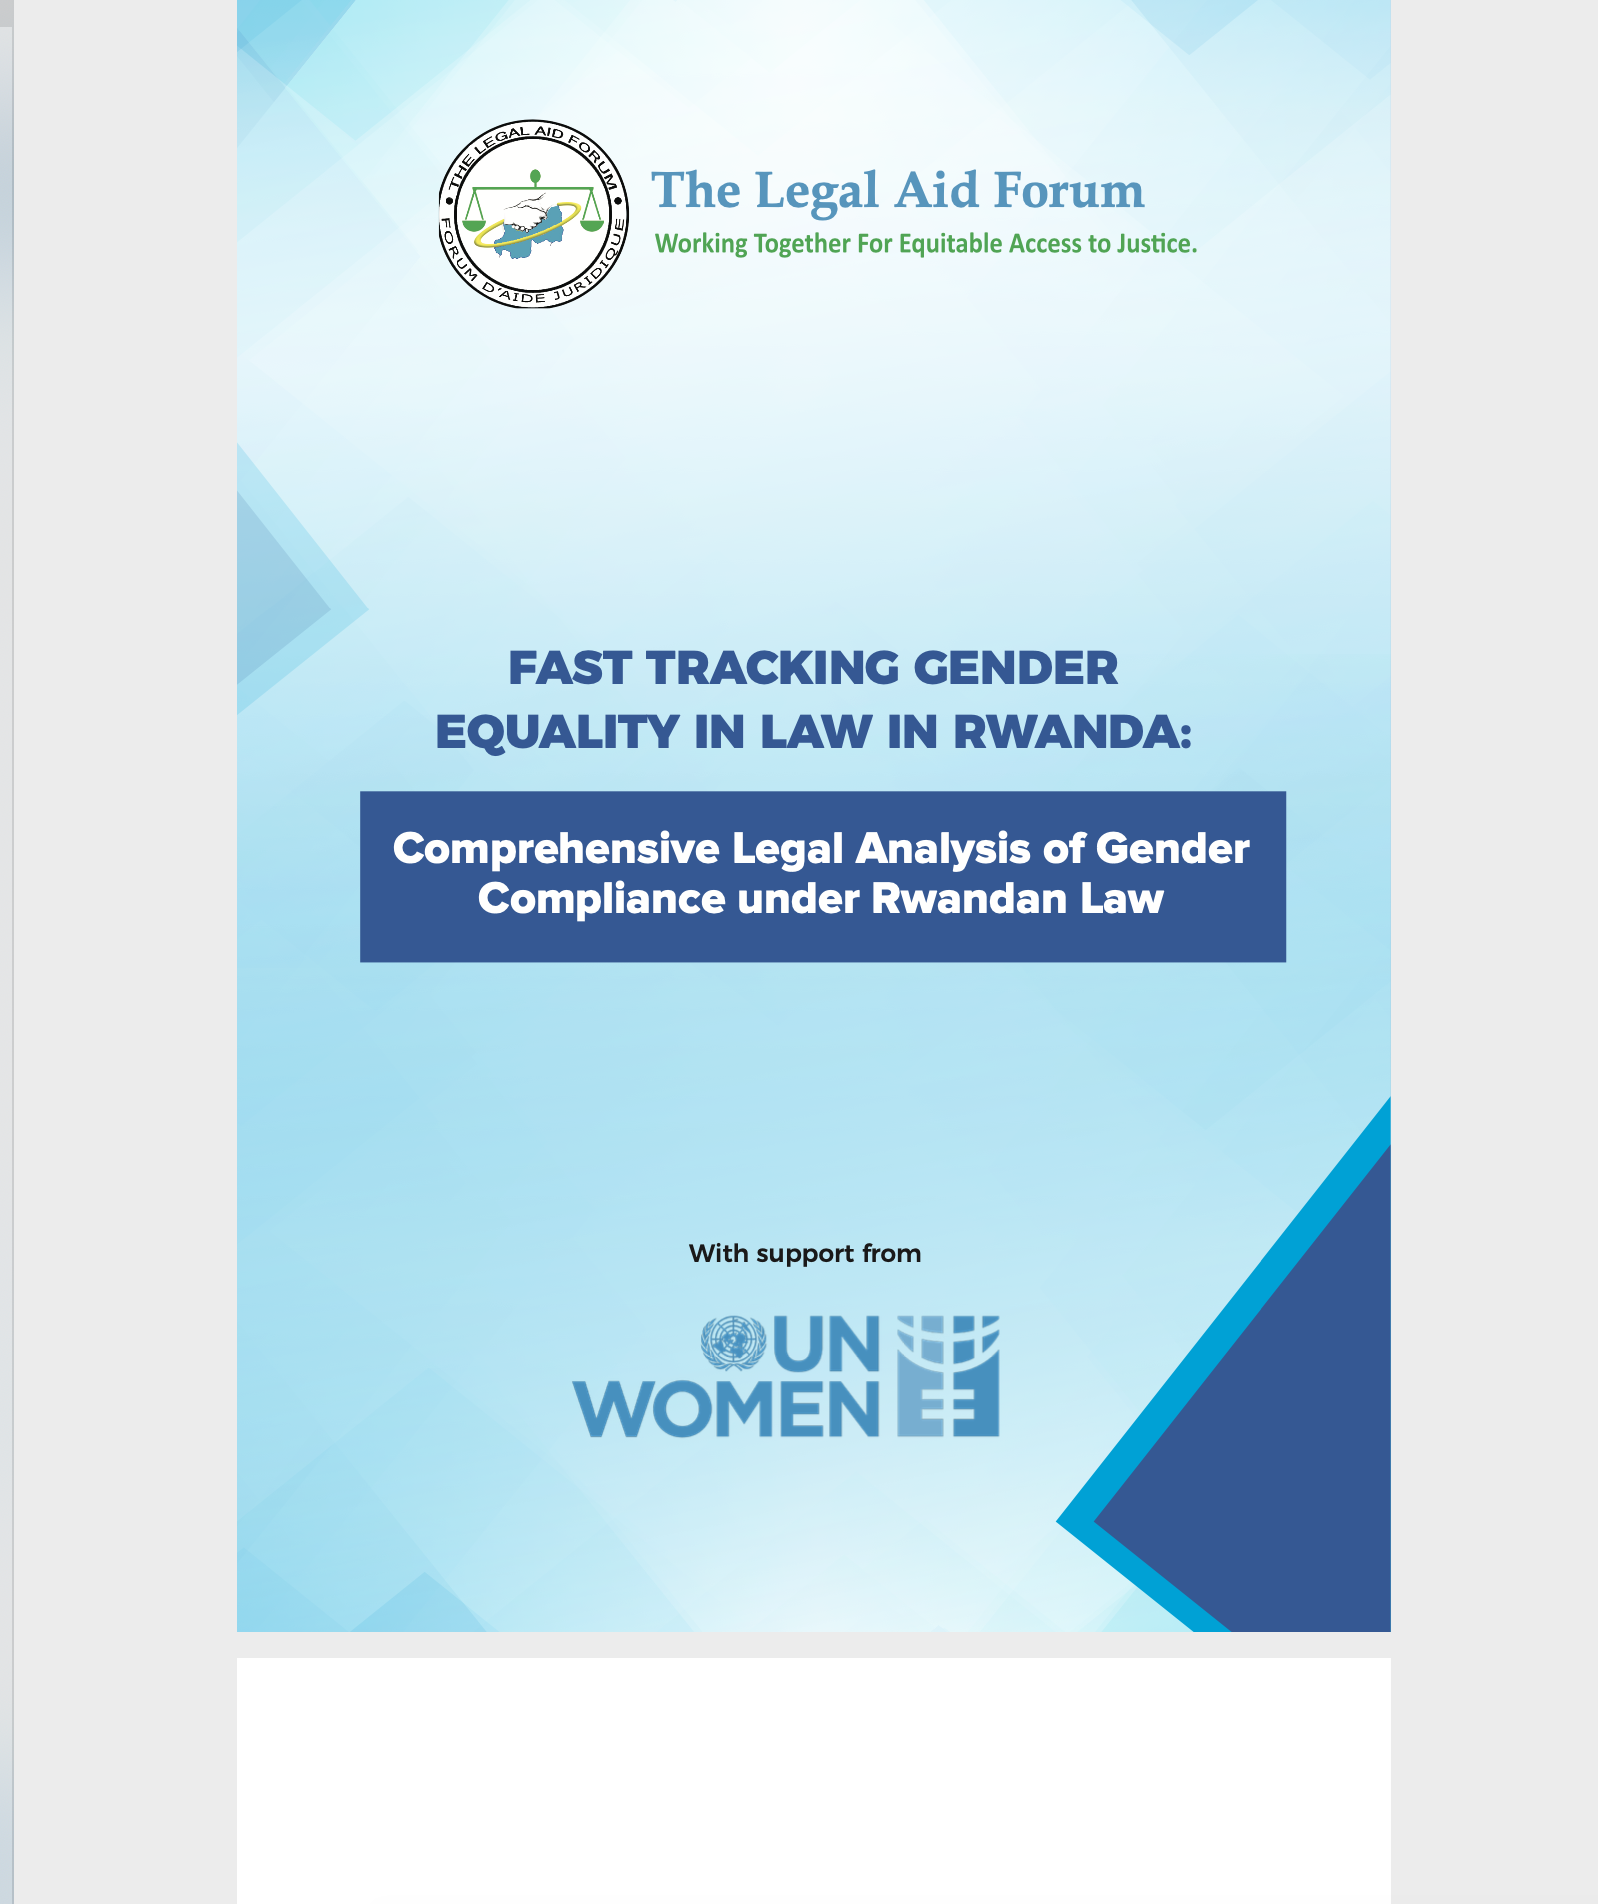 FAST TRACKING GENDER EQUALITY IN LAW IN RWANDA: Comprehensive Legal Analysis of Gender Compliance under Rwandan Law